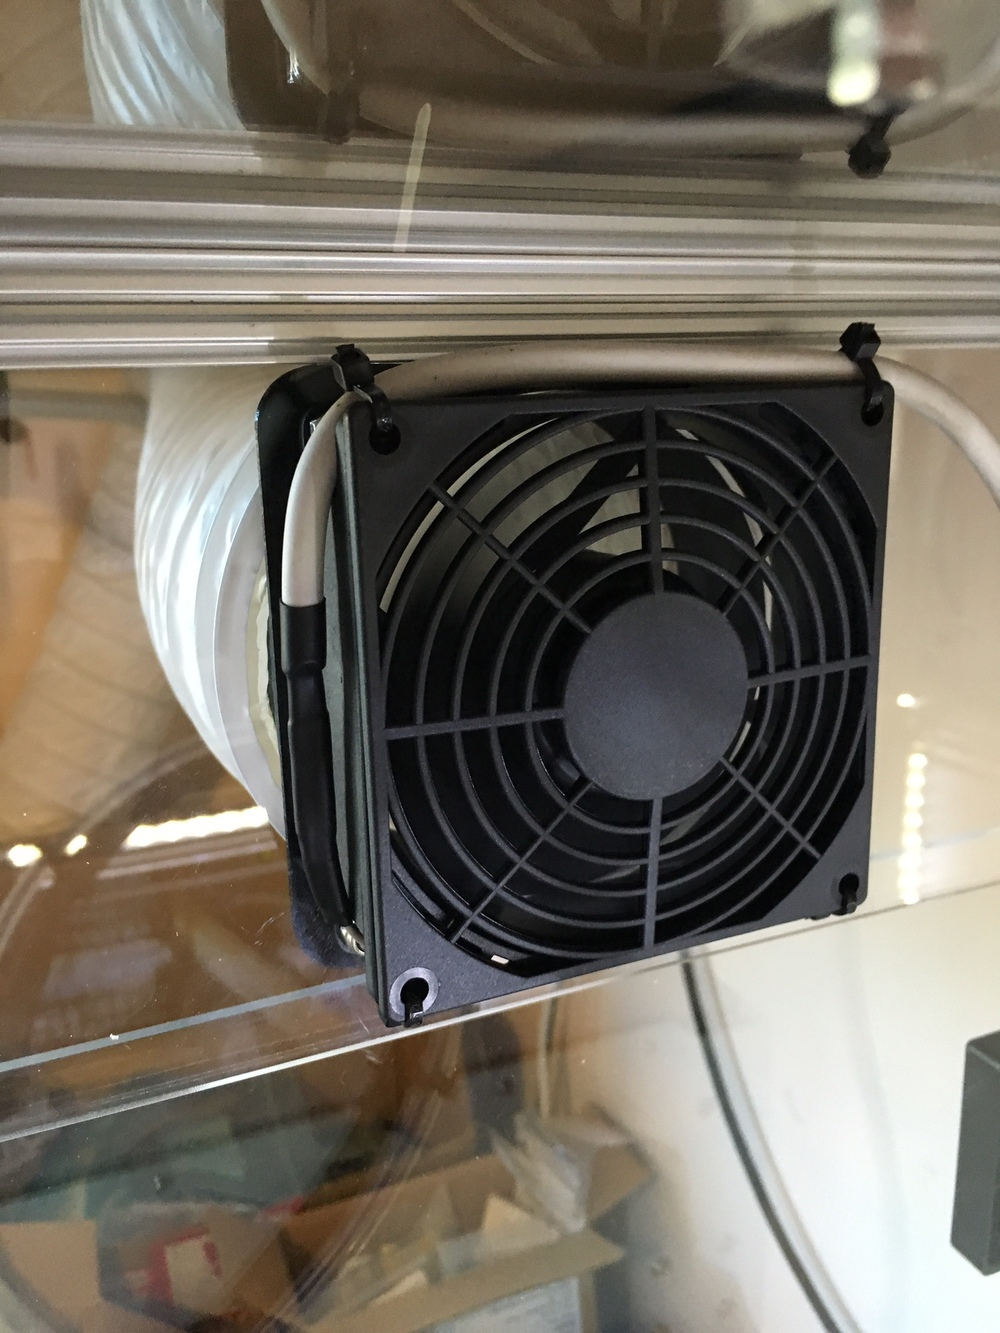 Enclosure extraction fan and fan guard